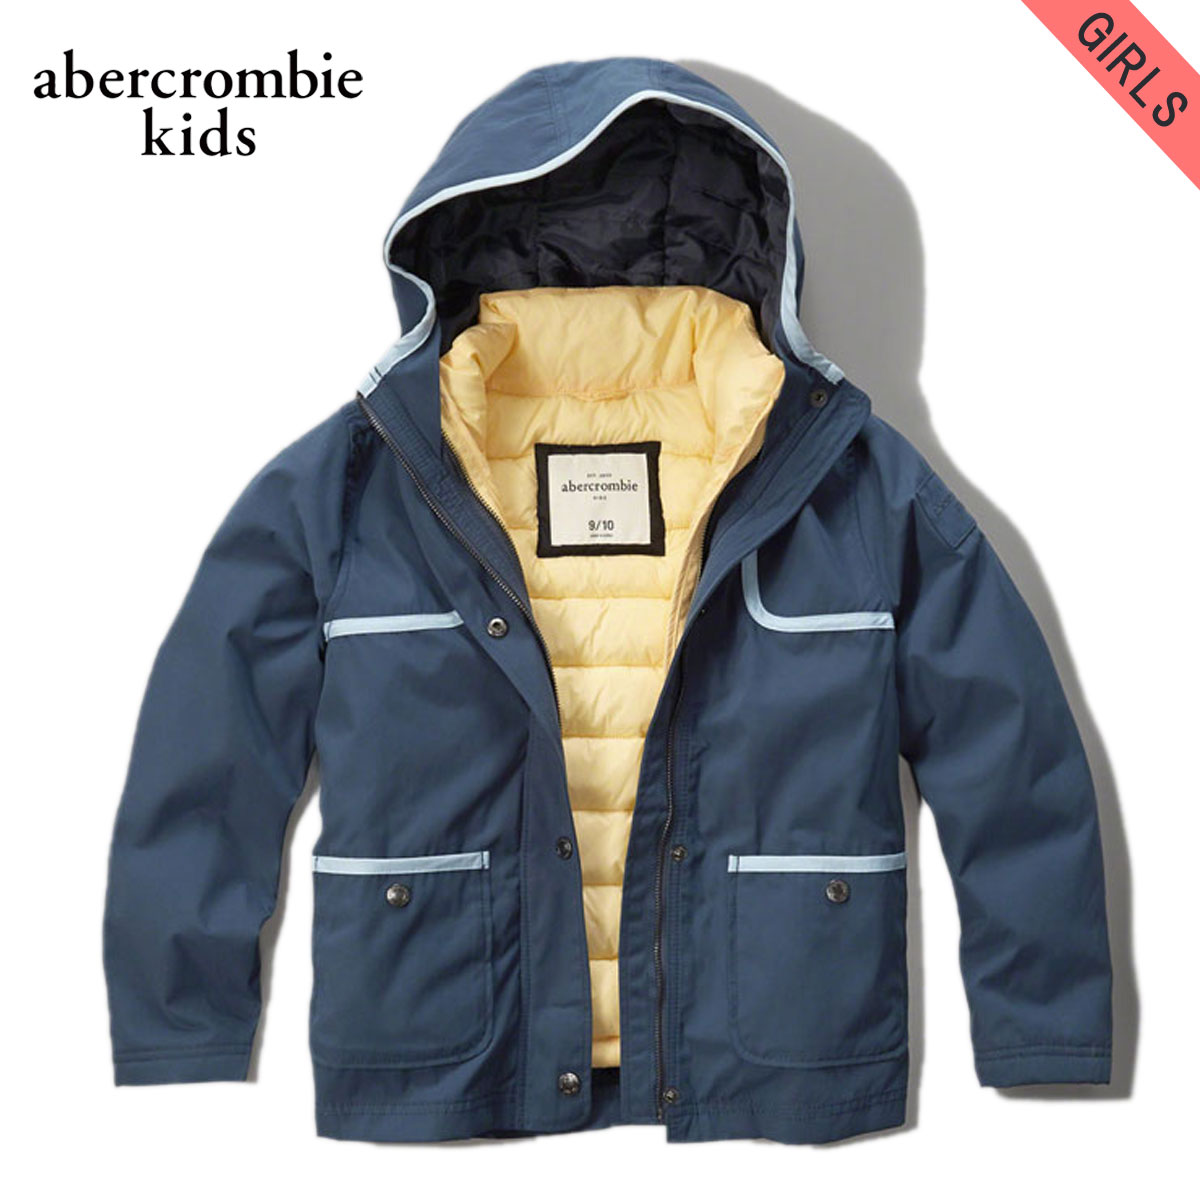 15%OFFセール 【販売期間 12/4 20:00~12/11 1:59】 アバクロキッズ AbercrombieKids 正規品 子供服 ガールズ アウタージャケット 3-in-1 jacket 244-856-0205-023 D00S20